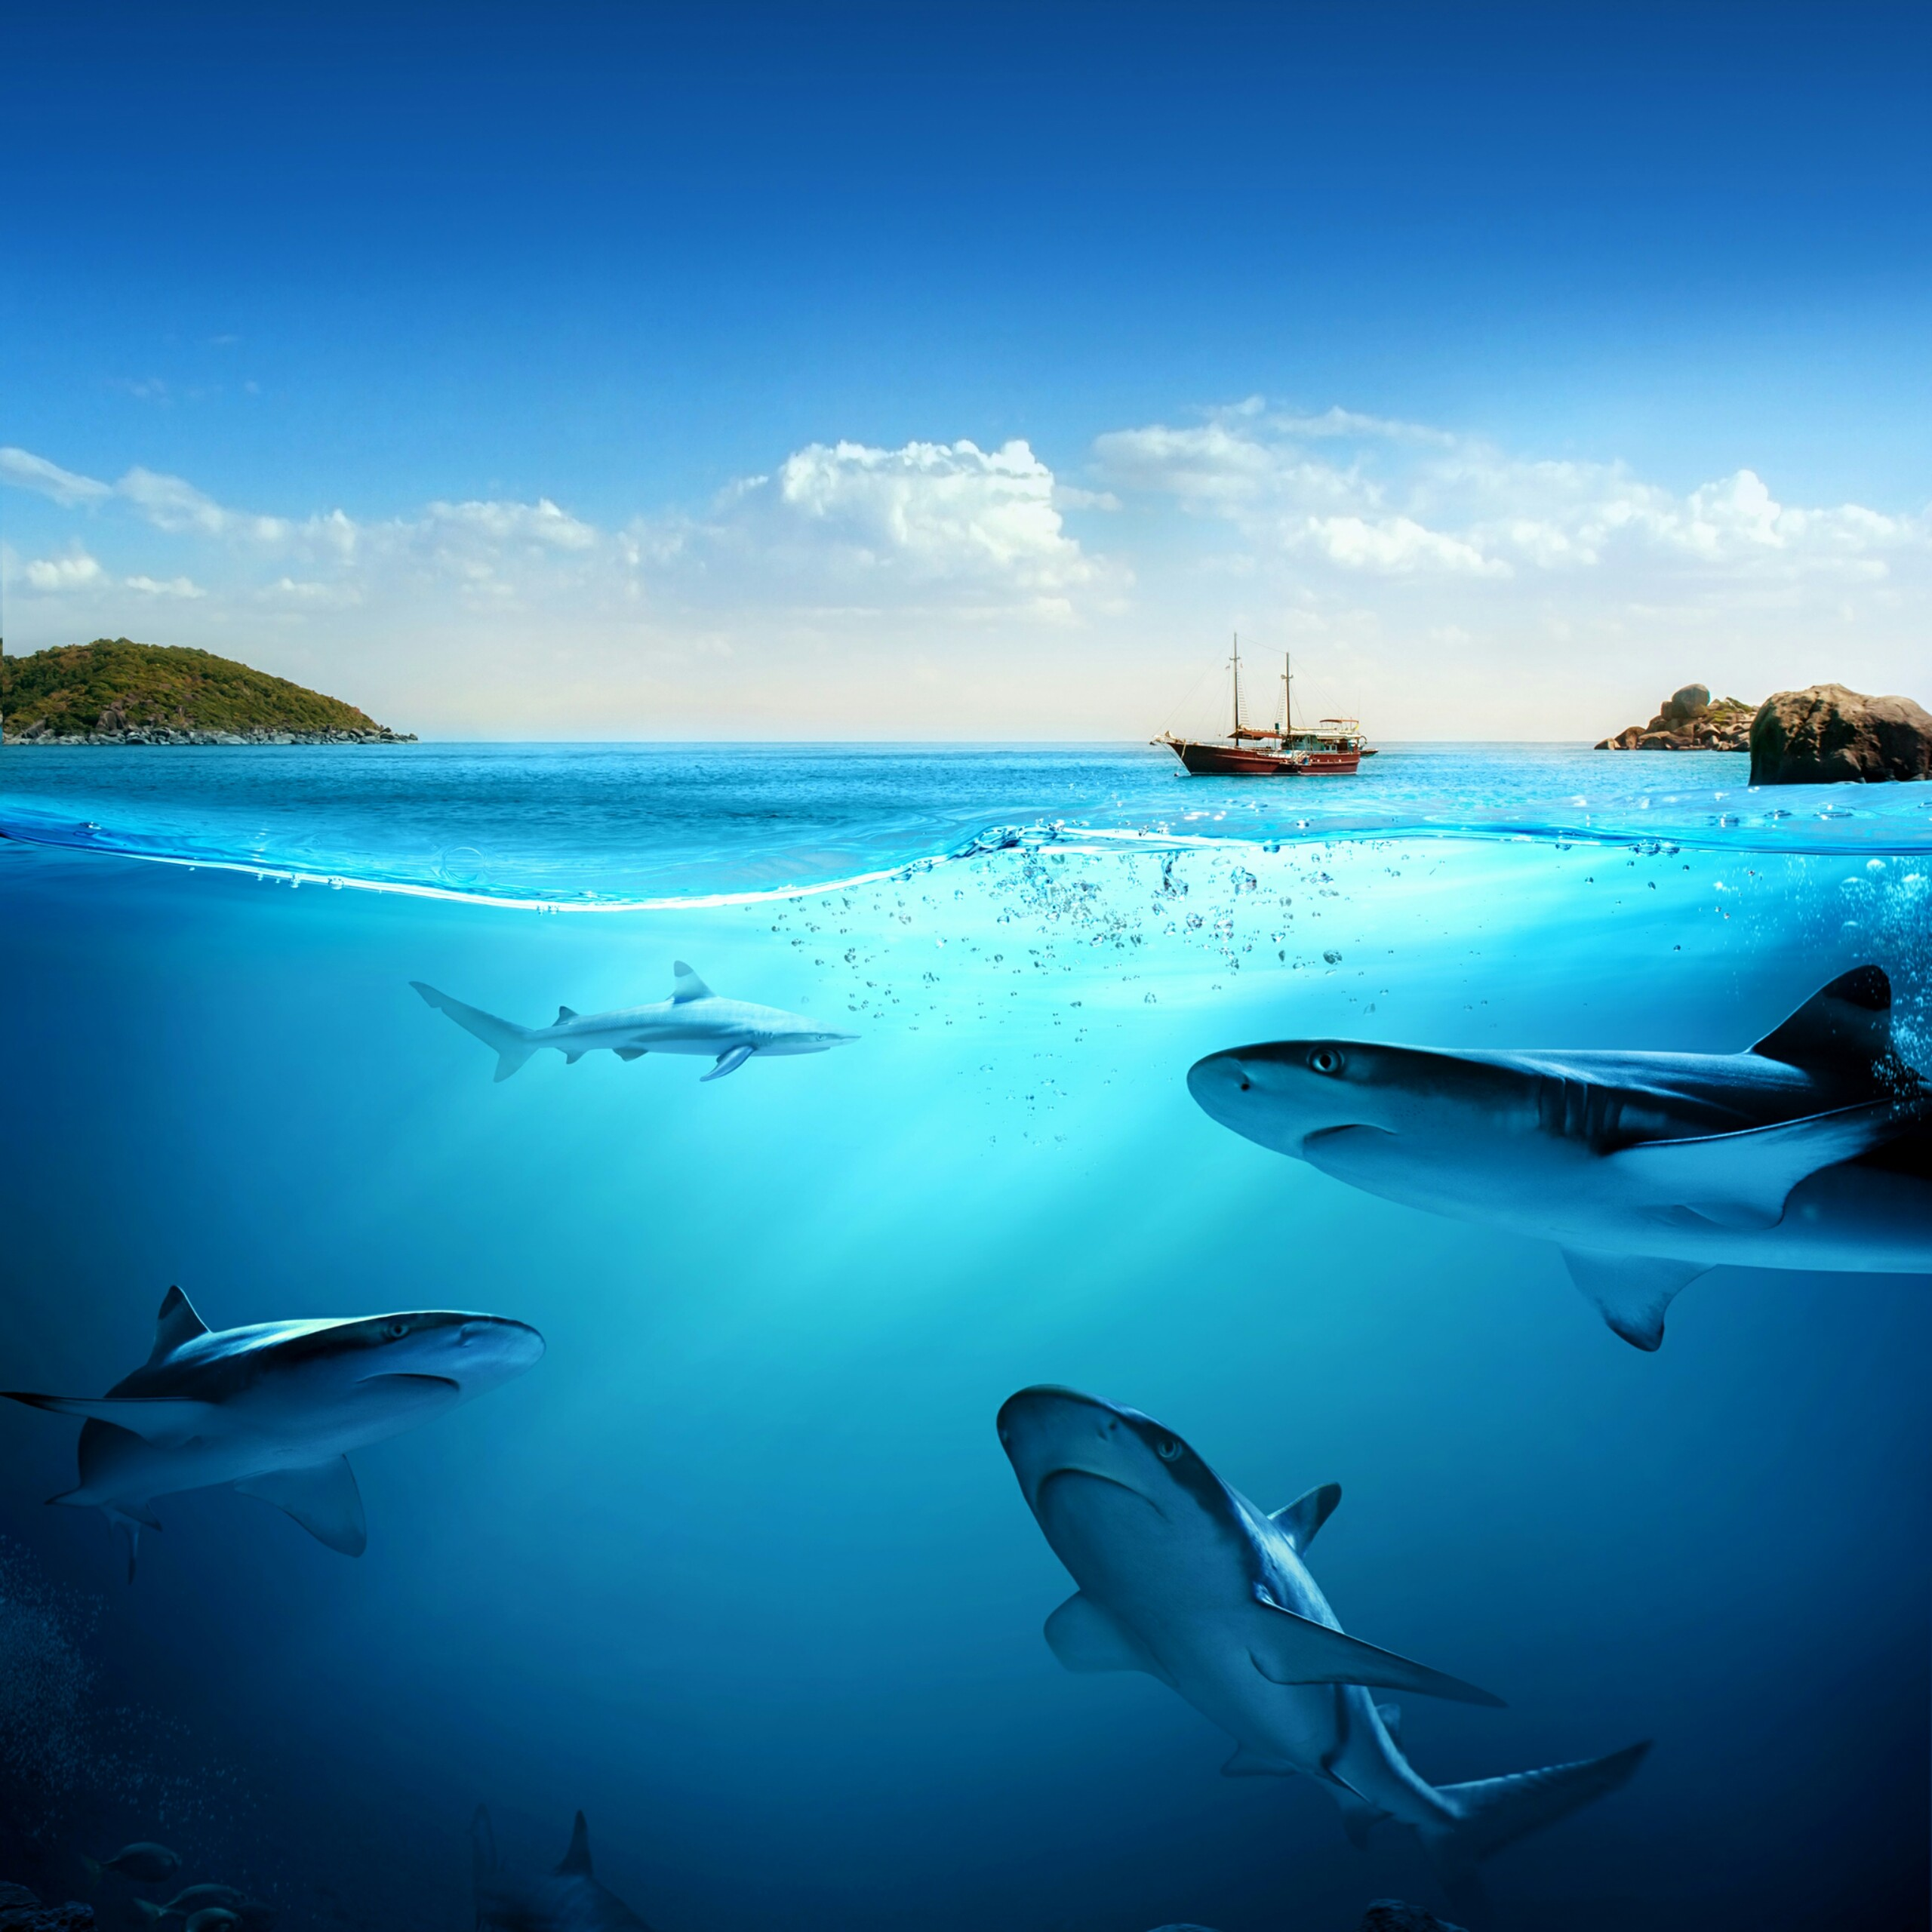 underwater wallpapers ocean free images cool hd